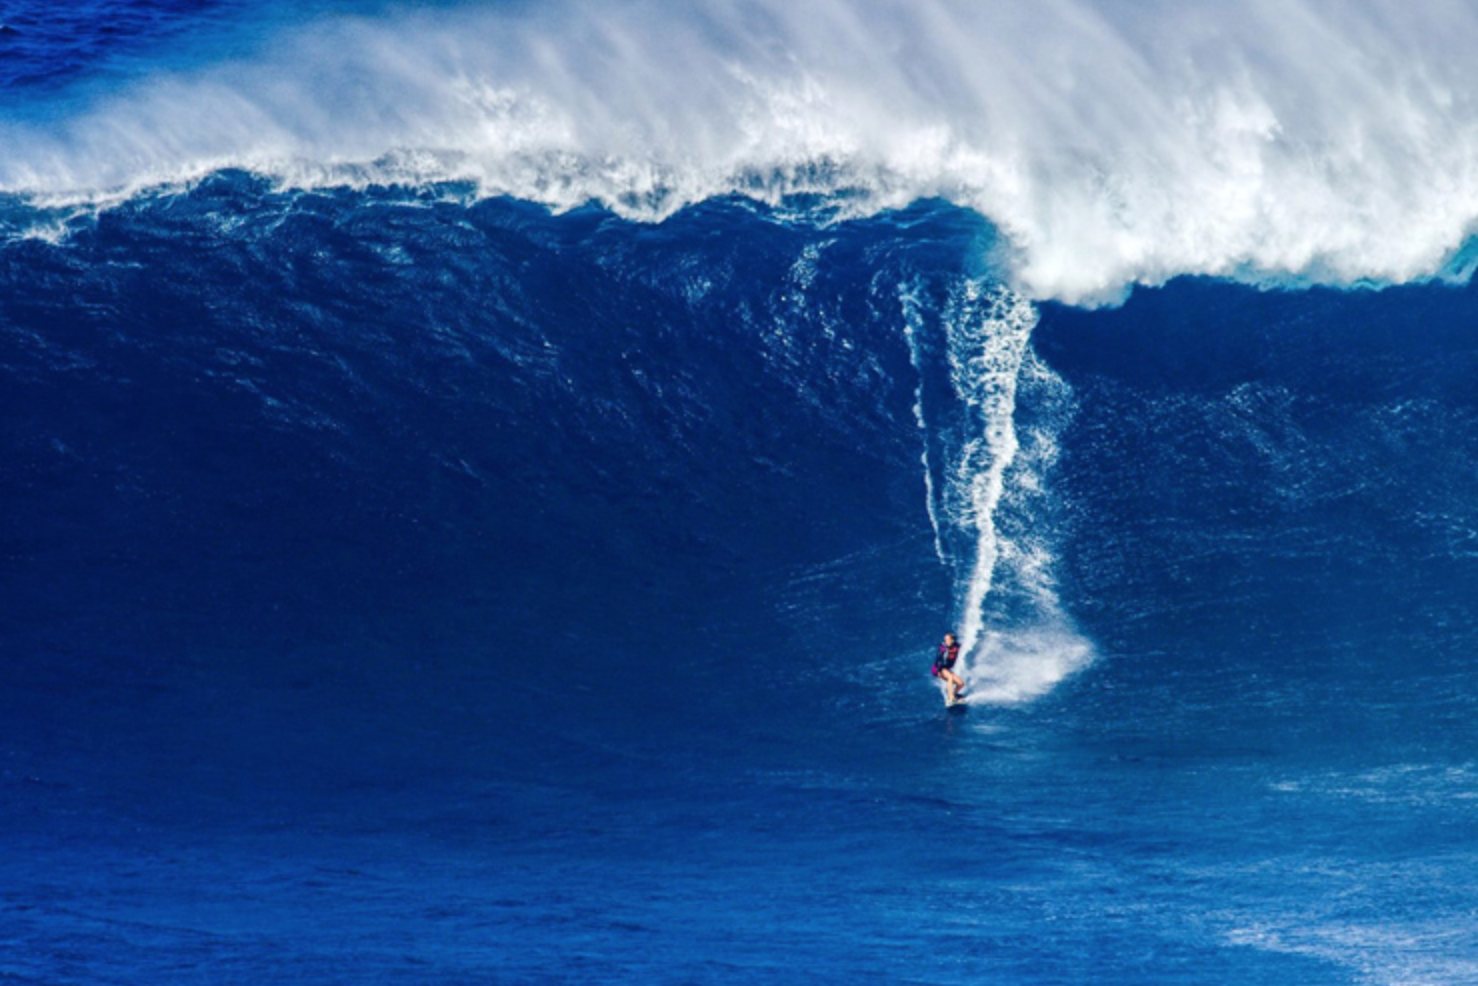 Bethany Hamilton, surfing a 40 ft wave at Jaws in Hawaii. 6 months after giving birth. She is incredible.